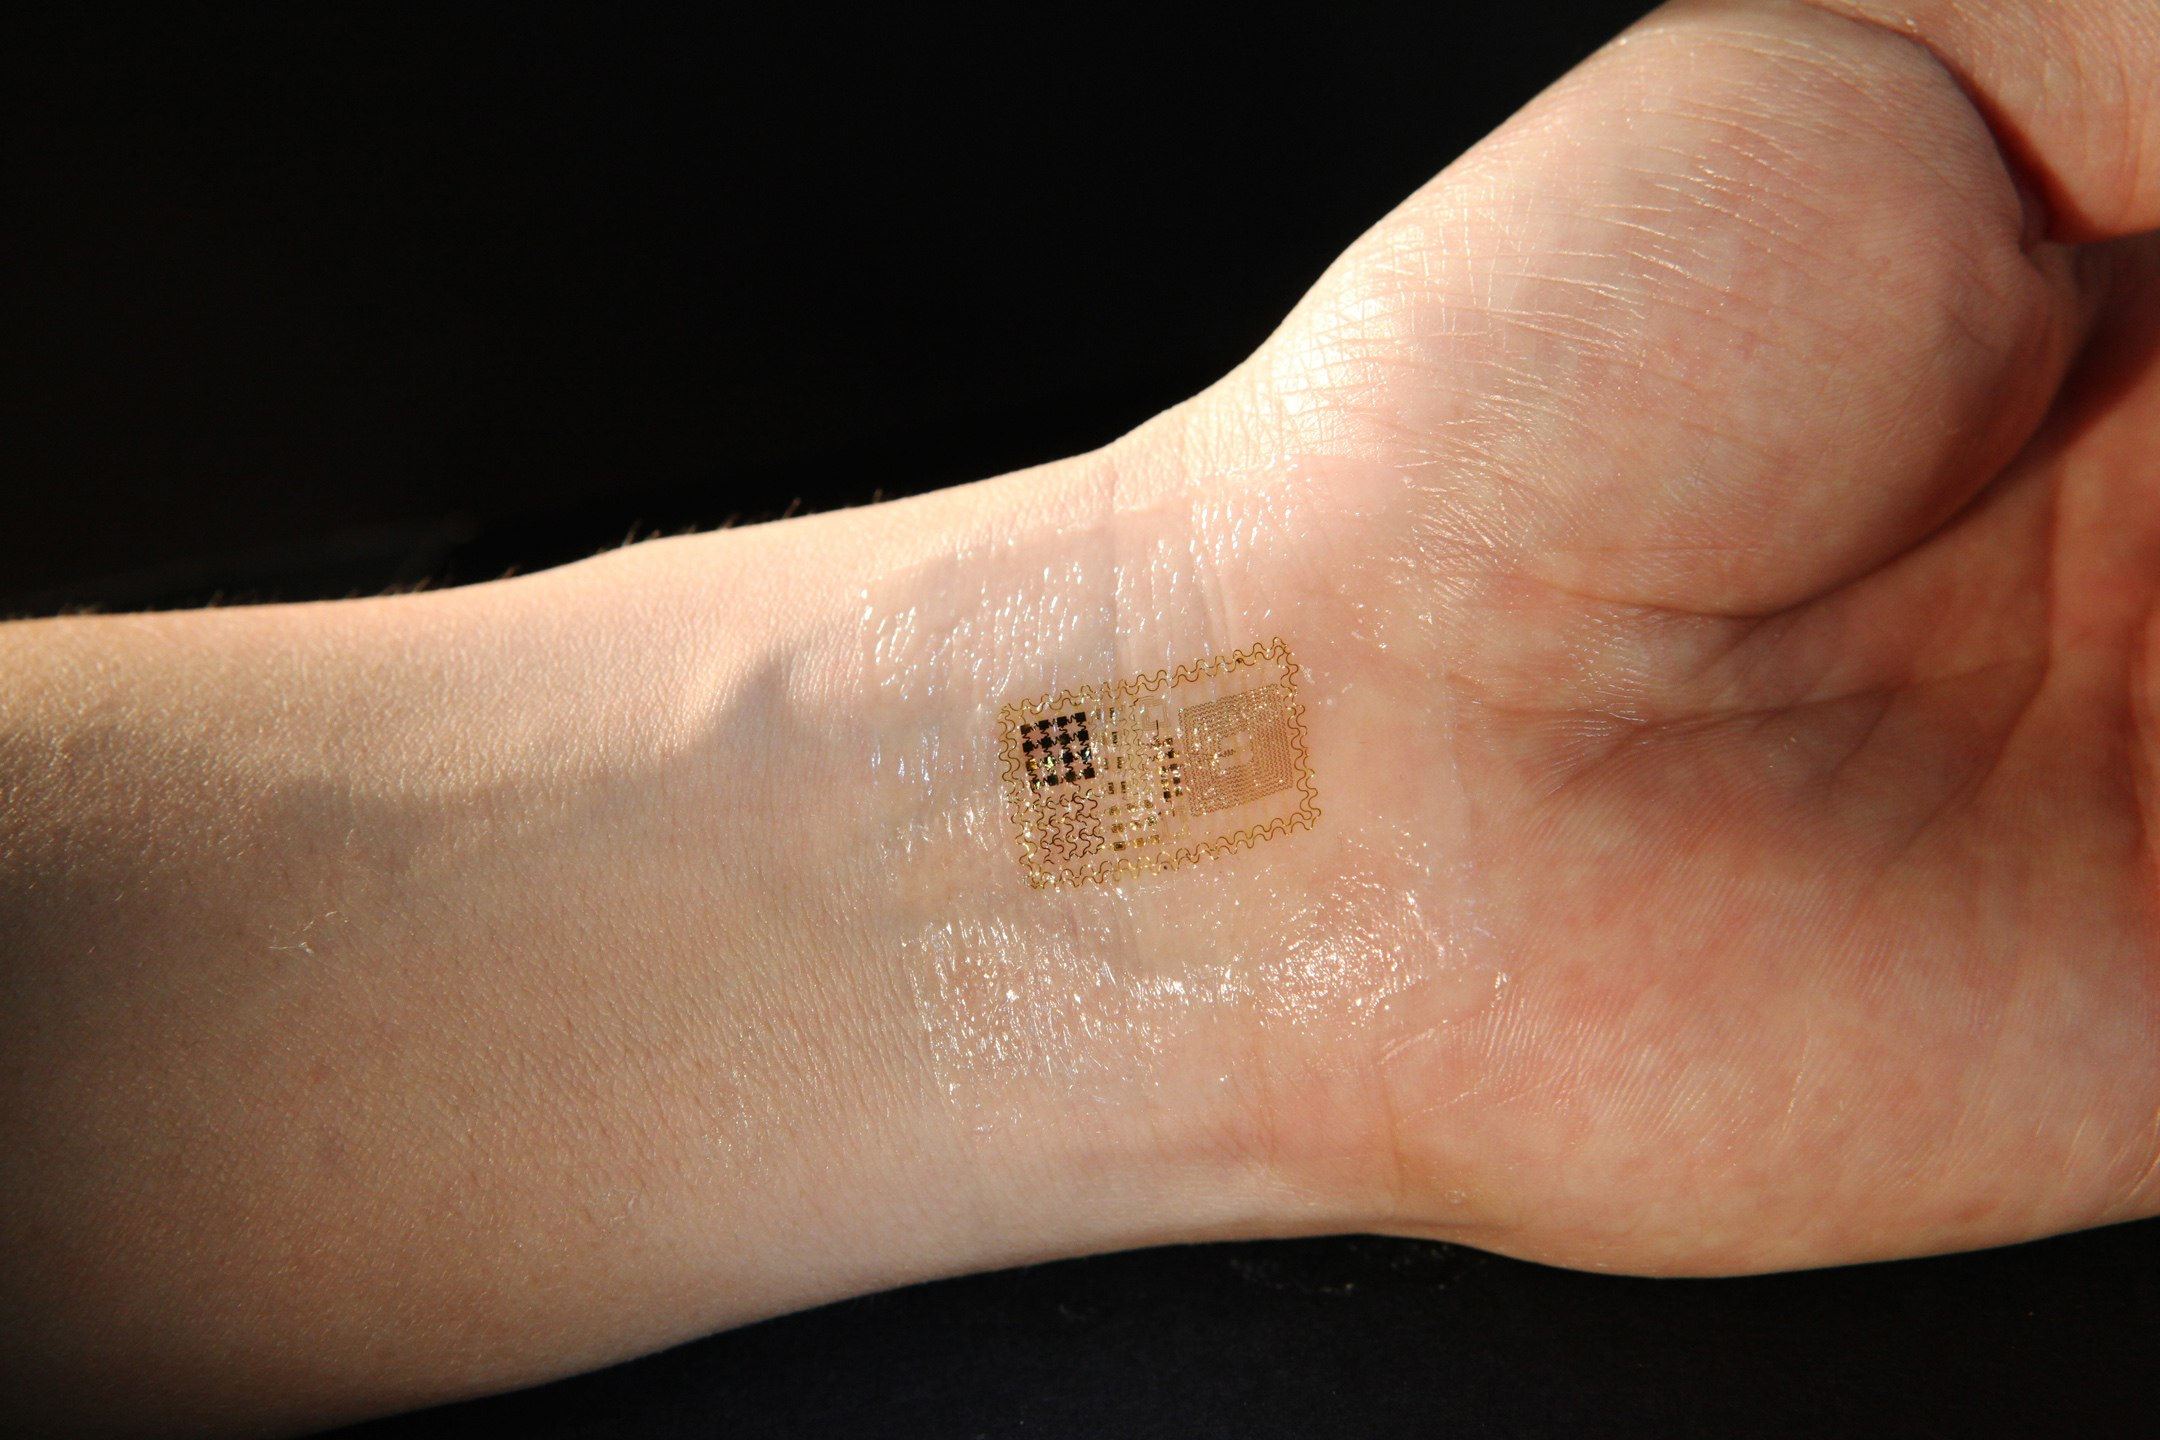 Sensor Tatoo (image 001)